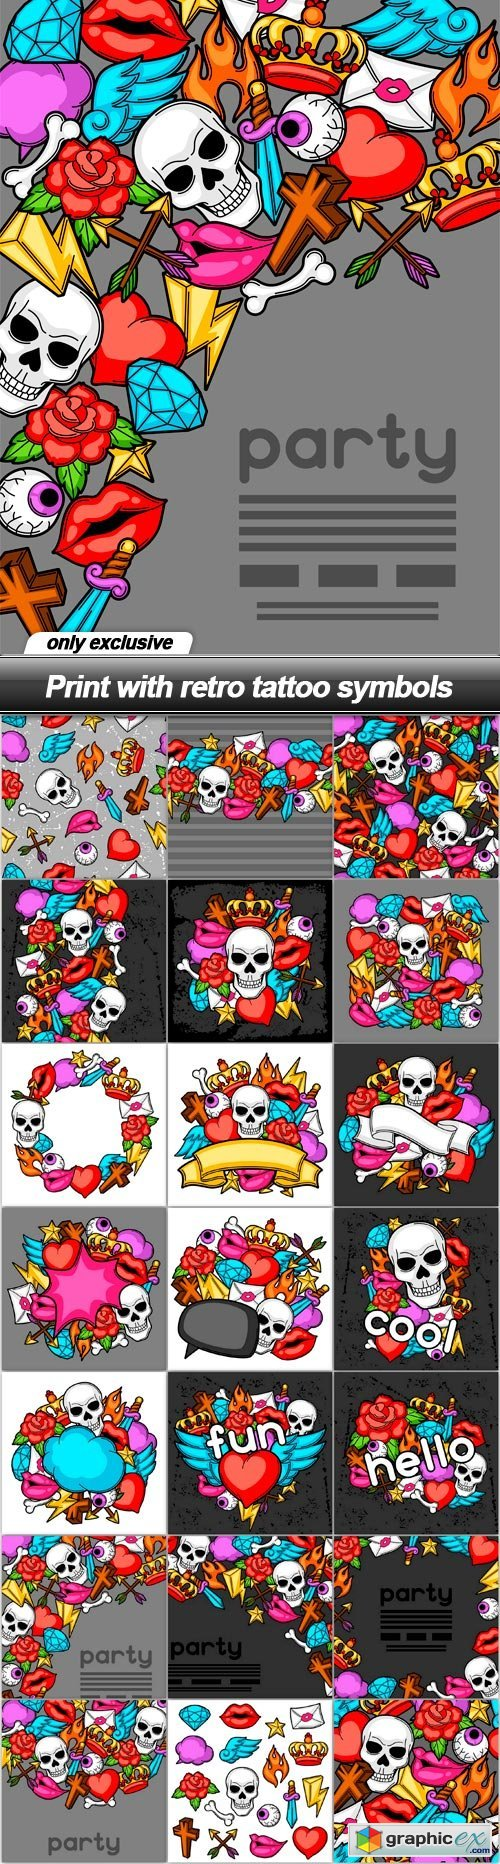 Print with retro tattoo symbols - 21 EPS